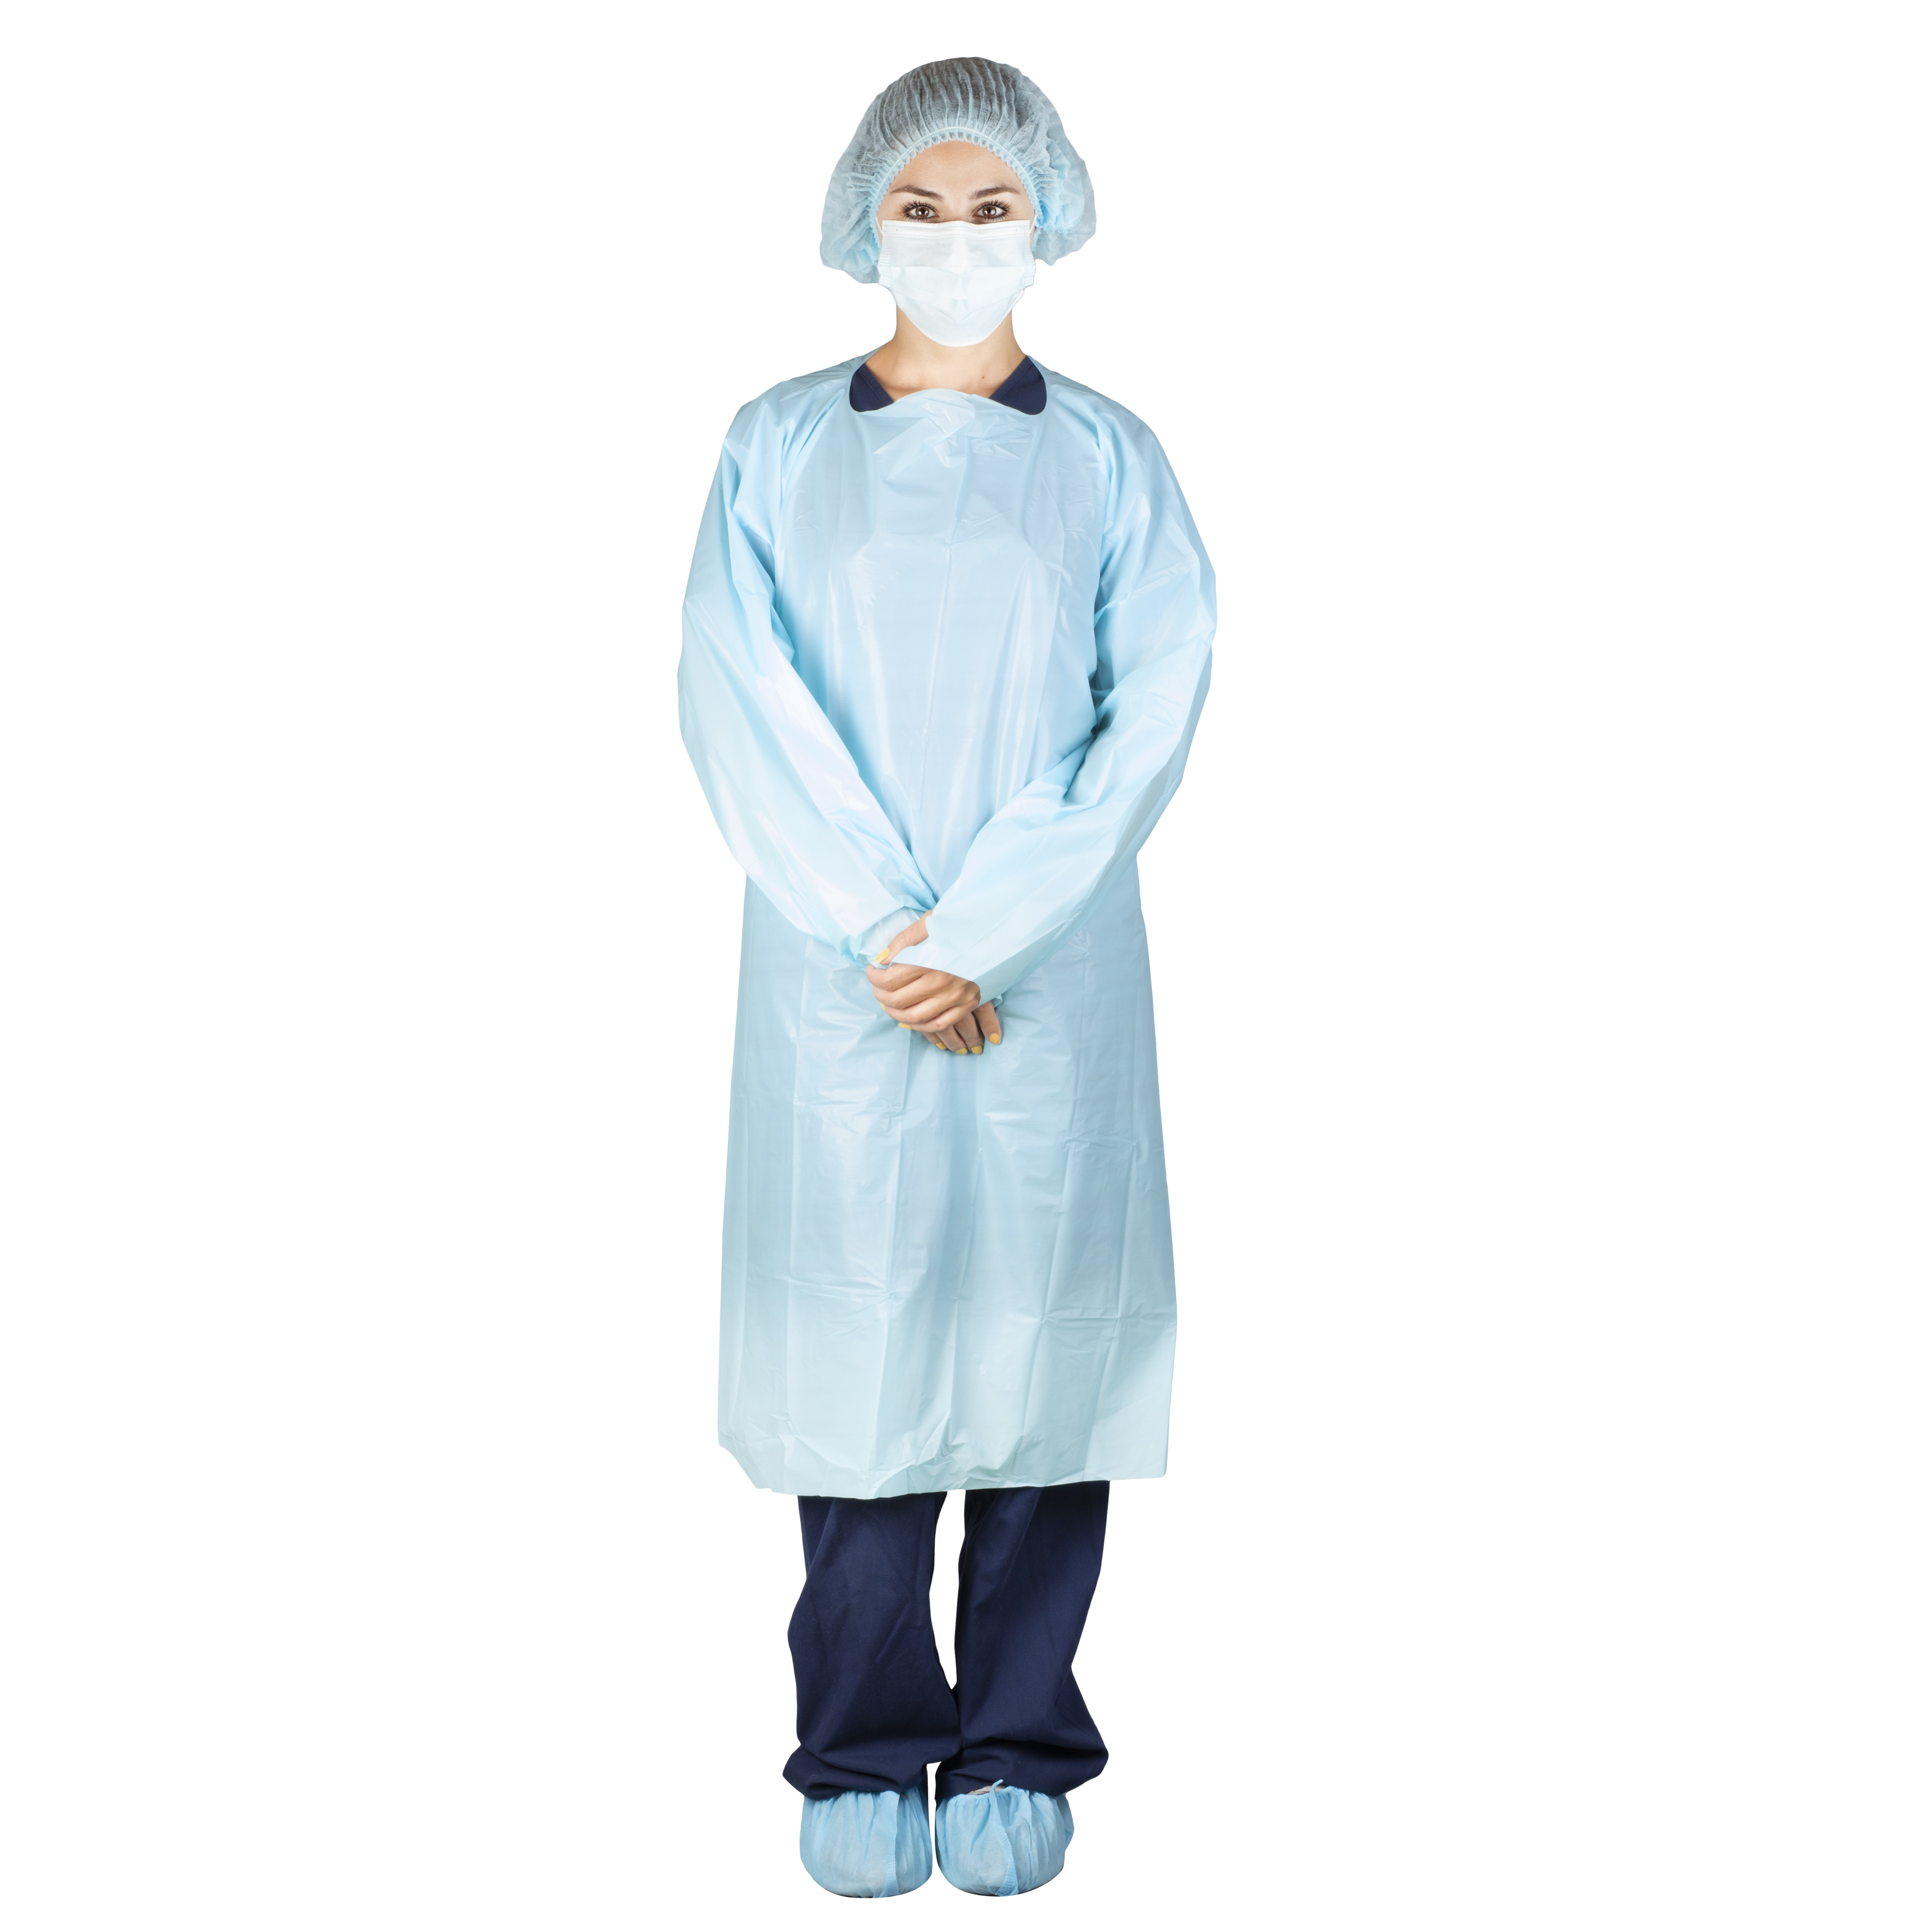 Thumbloop Isolation Gown Disposable